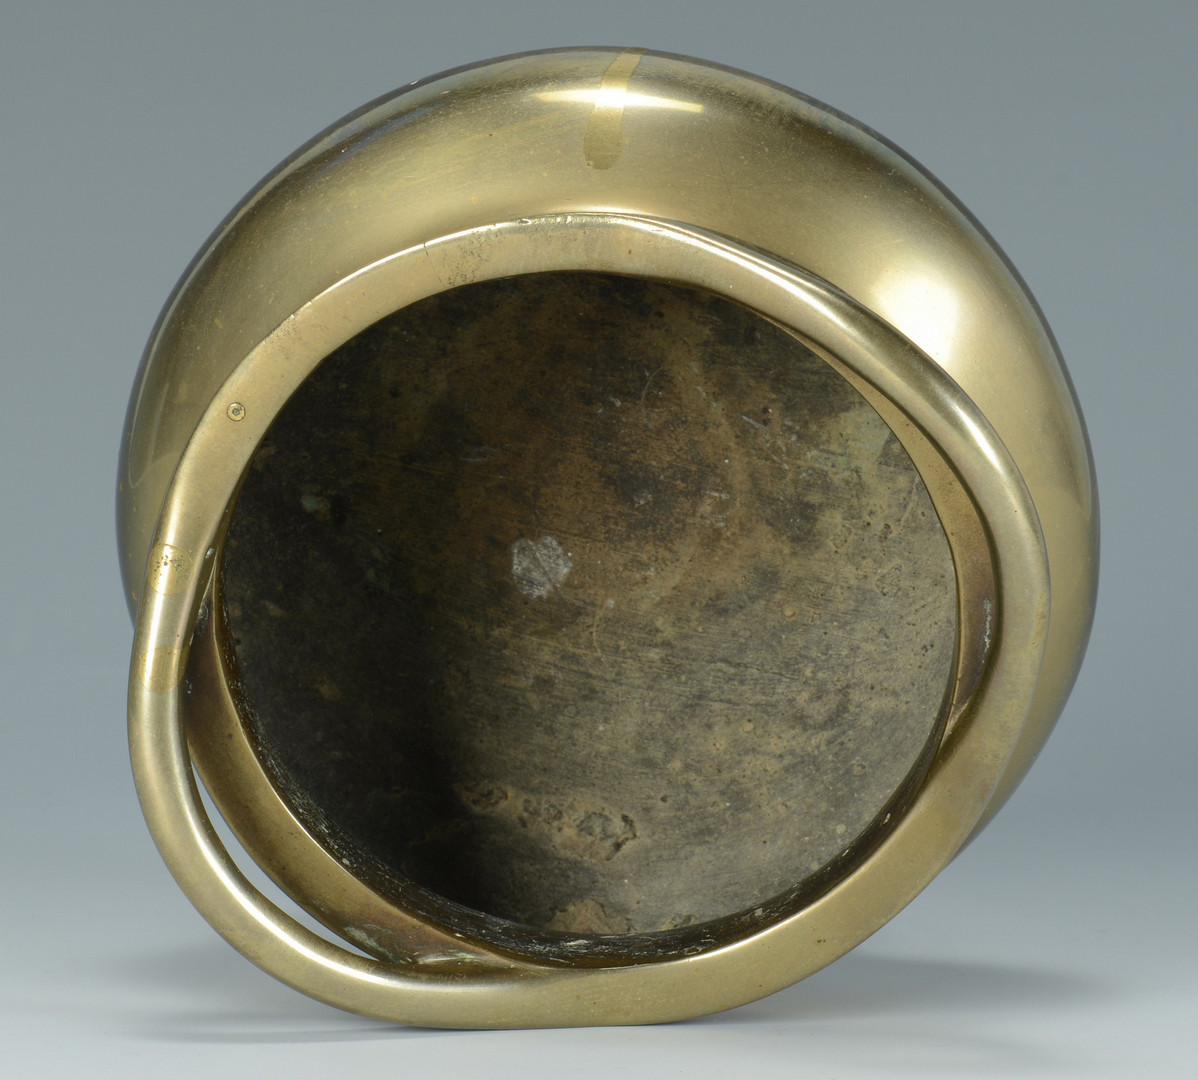 Lot 735: Asian and Mideast Metalware Items